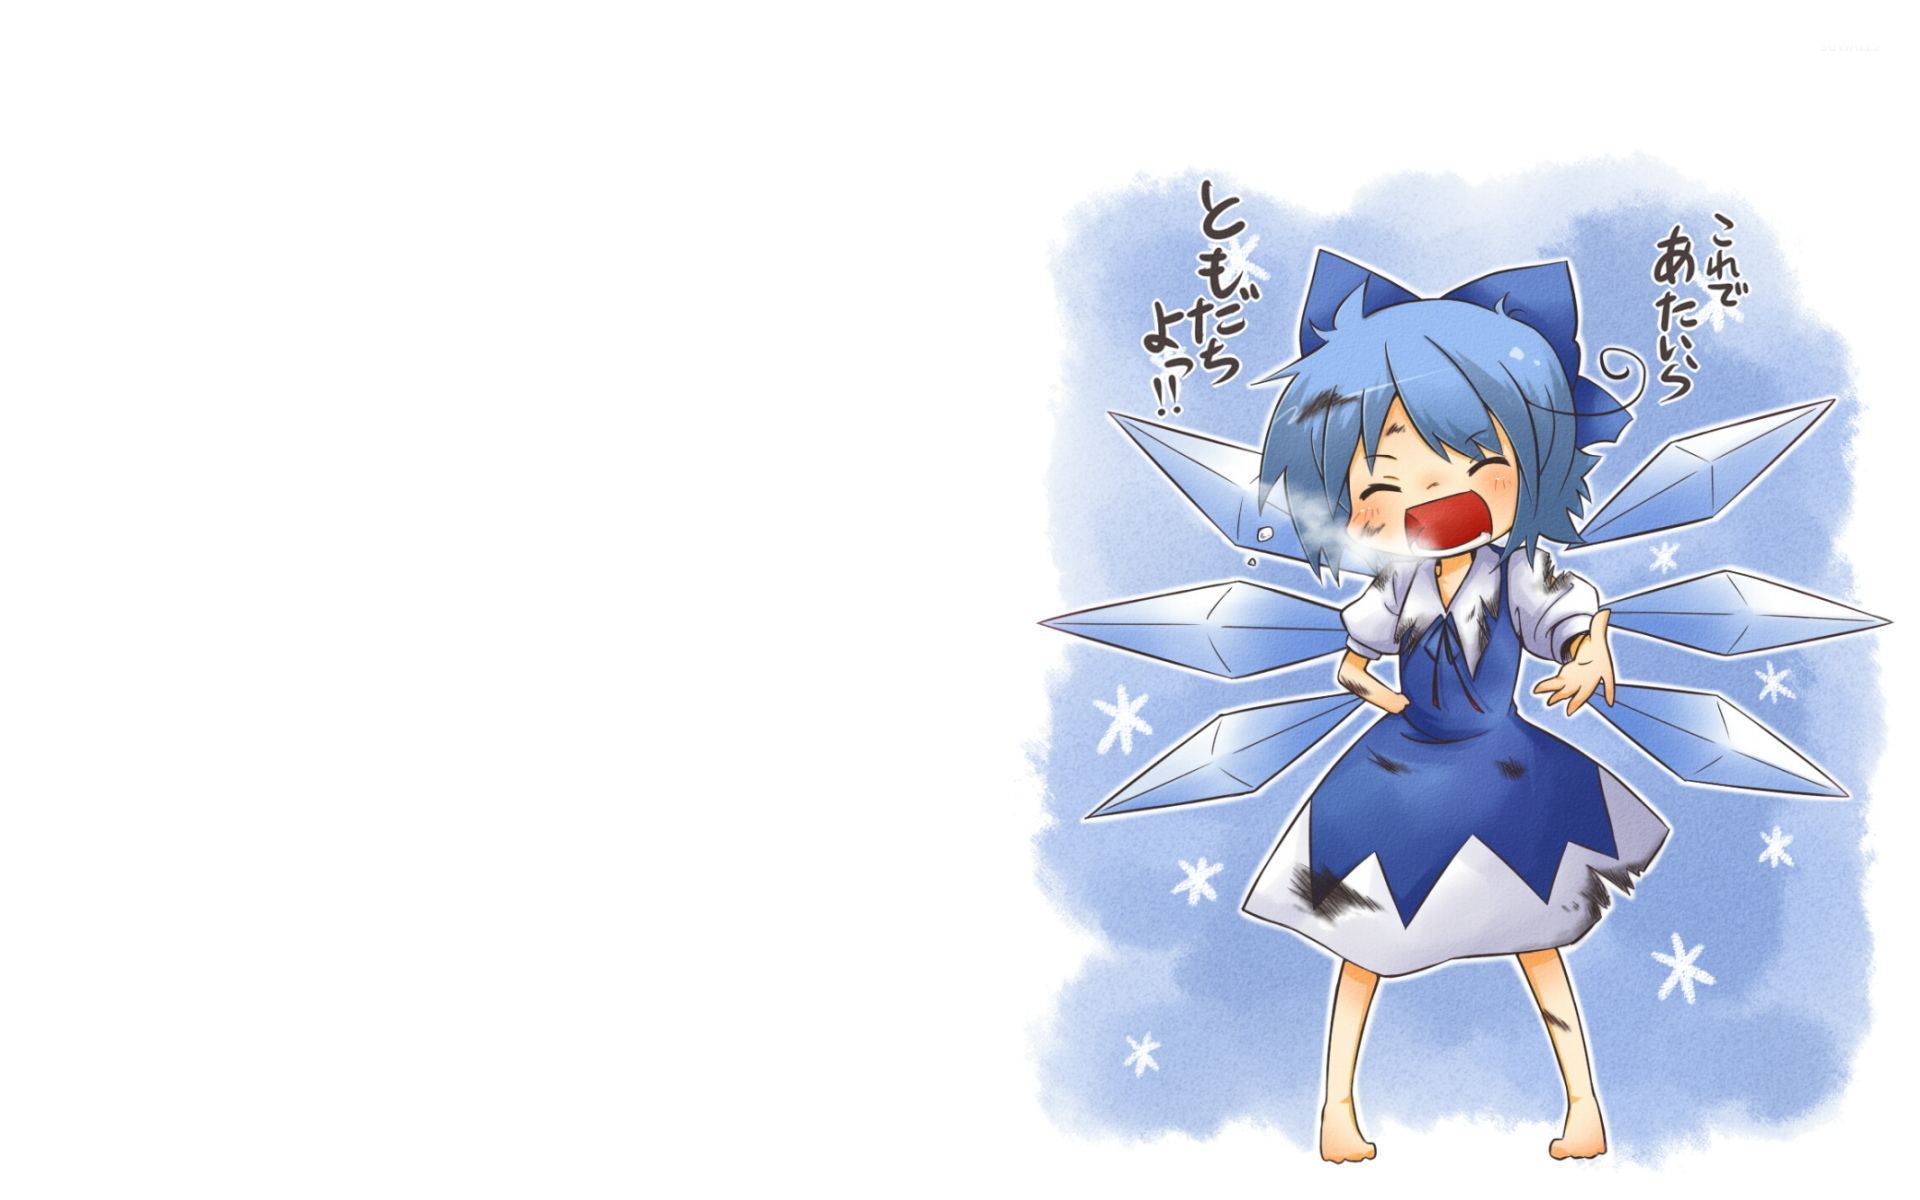 cirno touhou project 7 wallpaper anime wallpapers